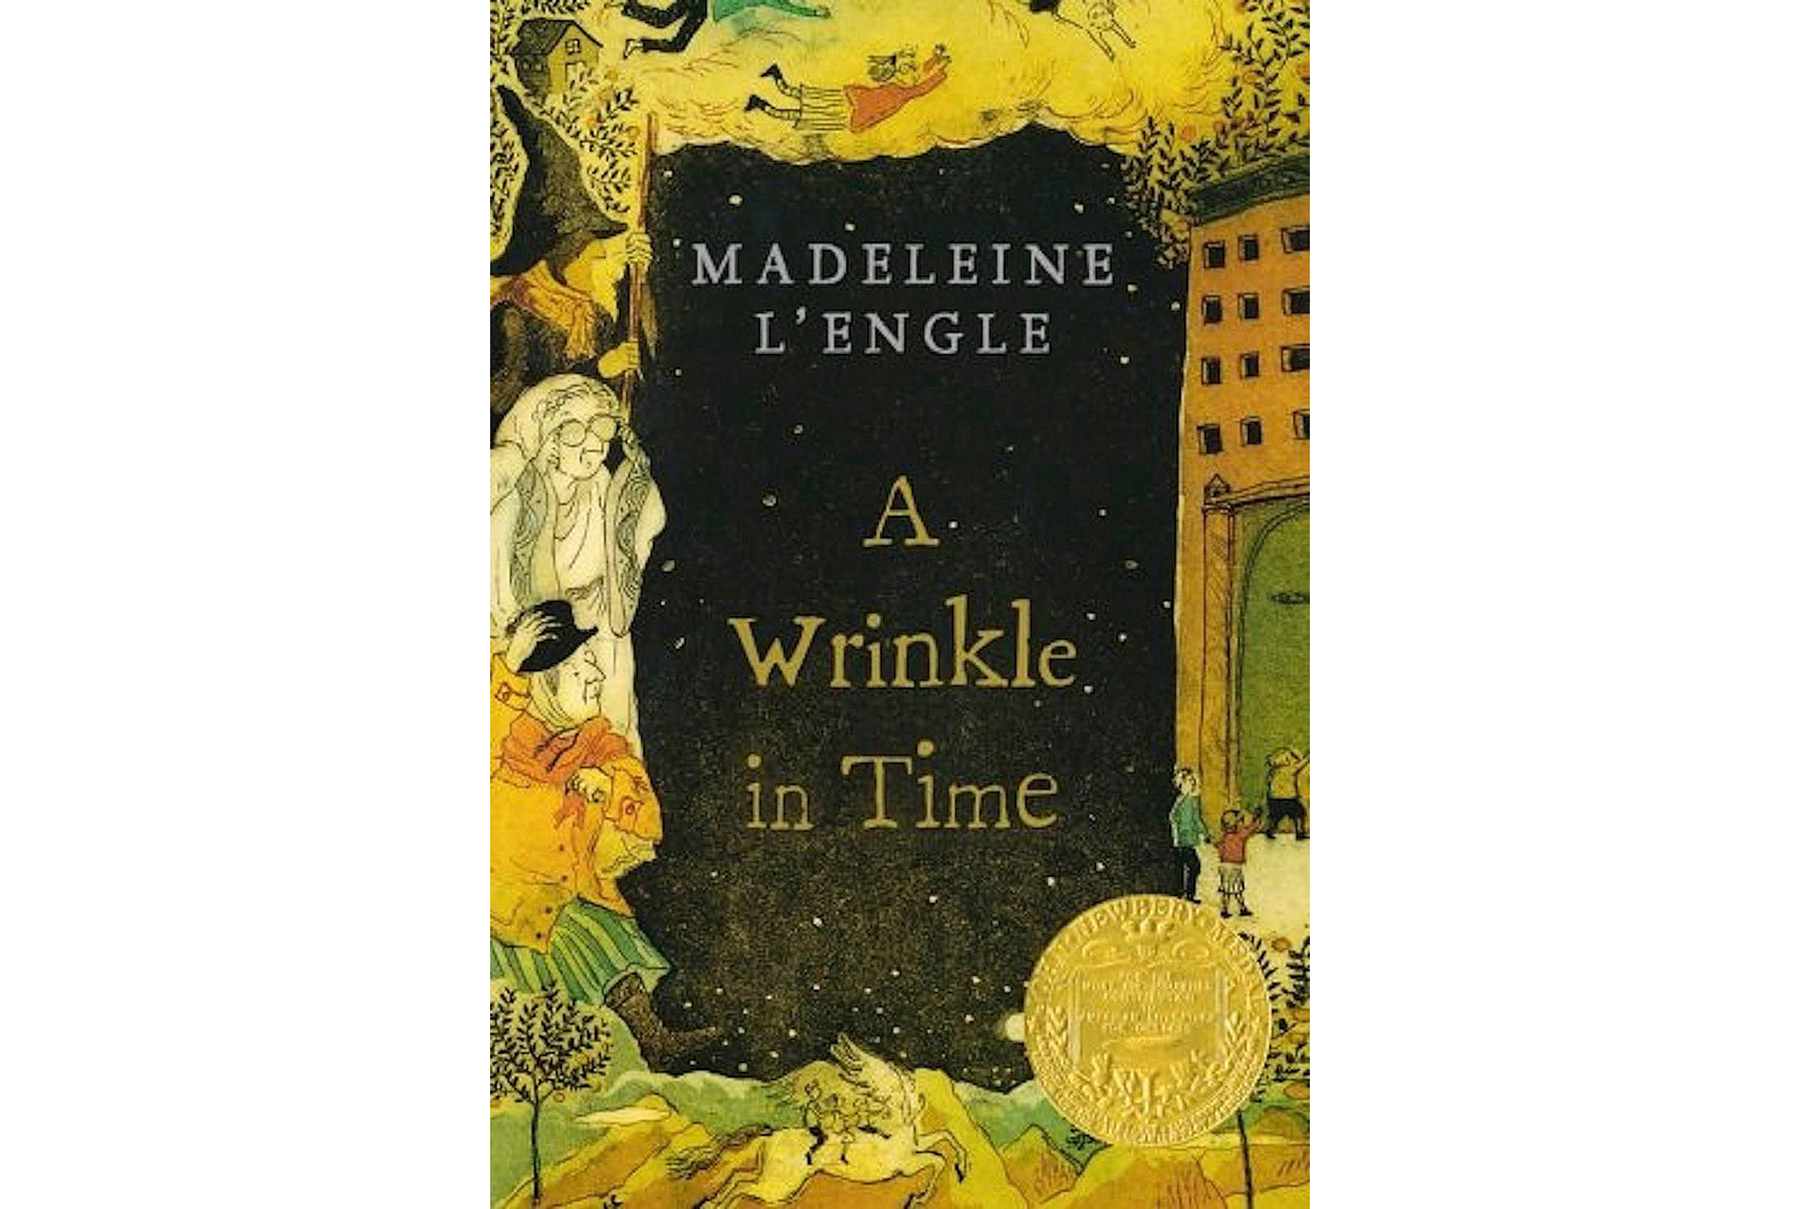 A Wrinkle in Time, by Madeleine L'Engle (FB READS)